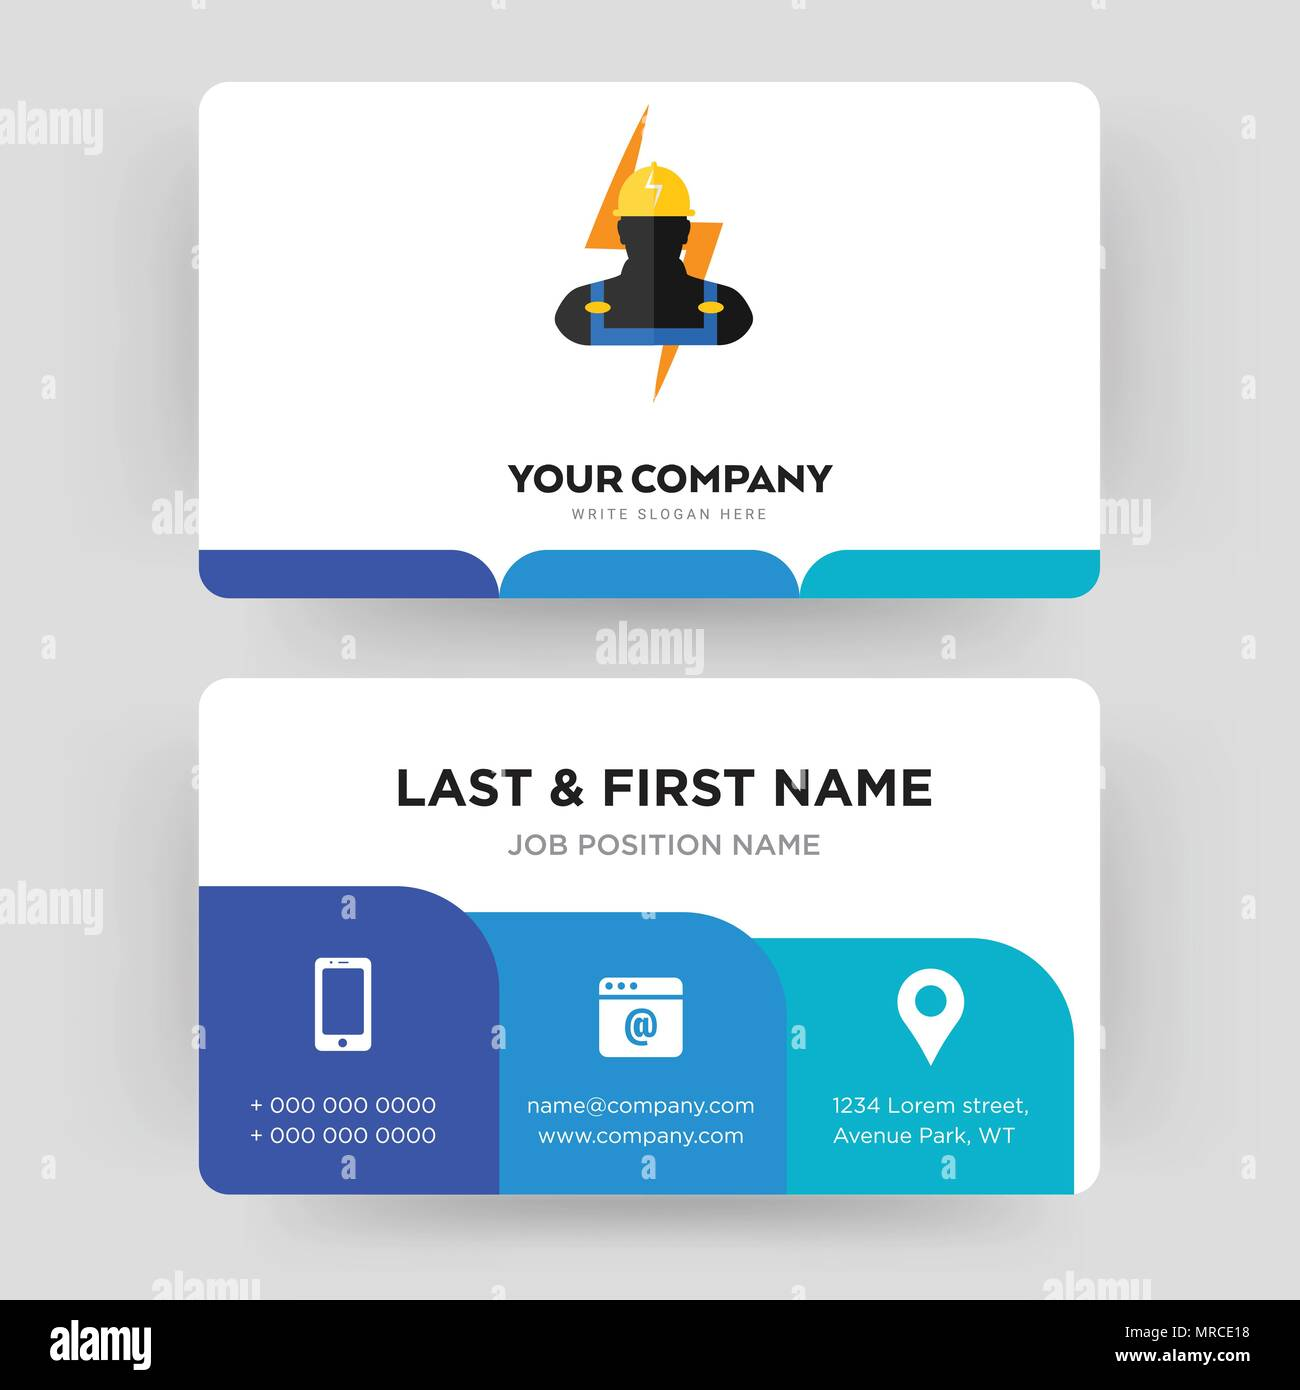 electrician business card design template visiting for your company modern creative and clean identity card vector - Electrician Business Cards